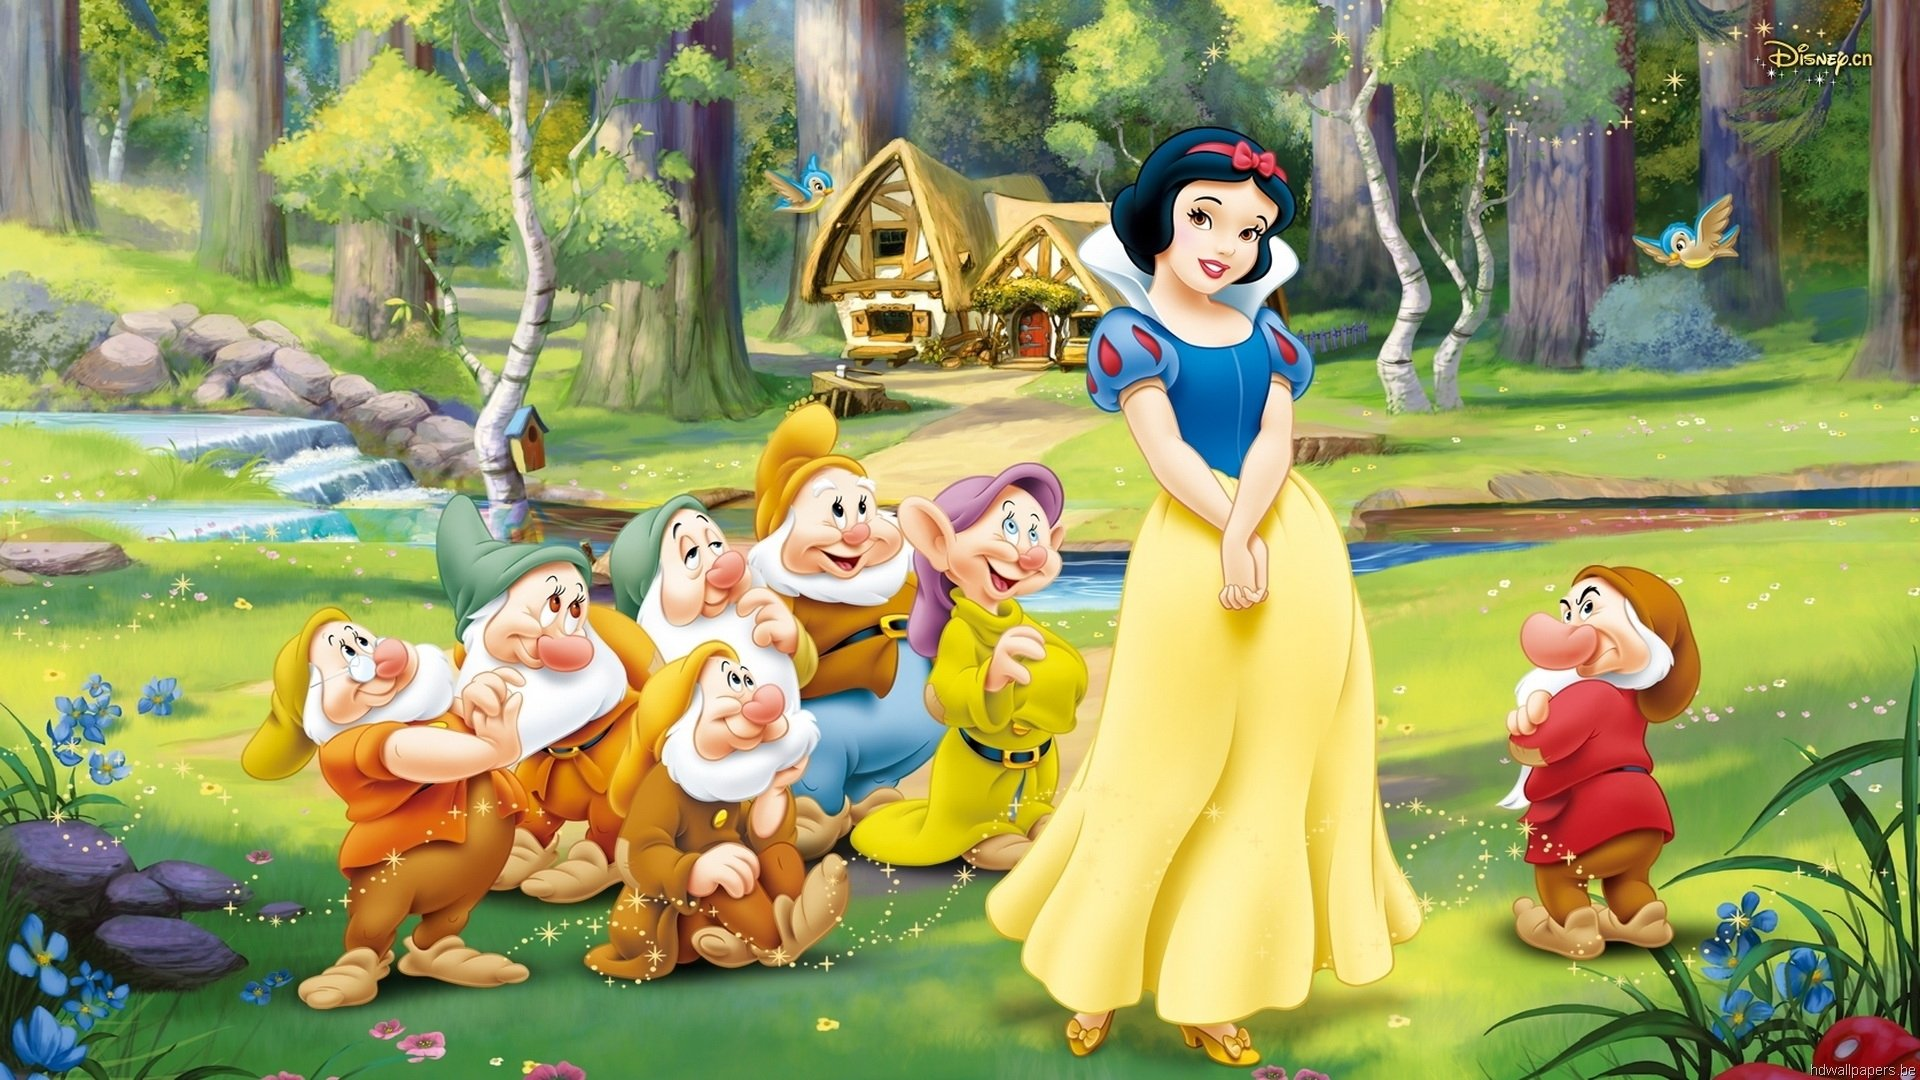 Snow White And The Seven Dwarfs Fondo De Pantalla Hd Fondo